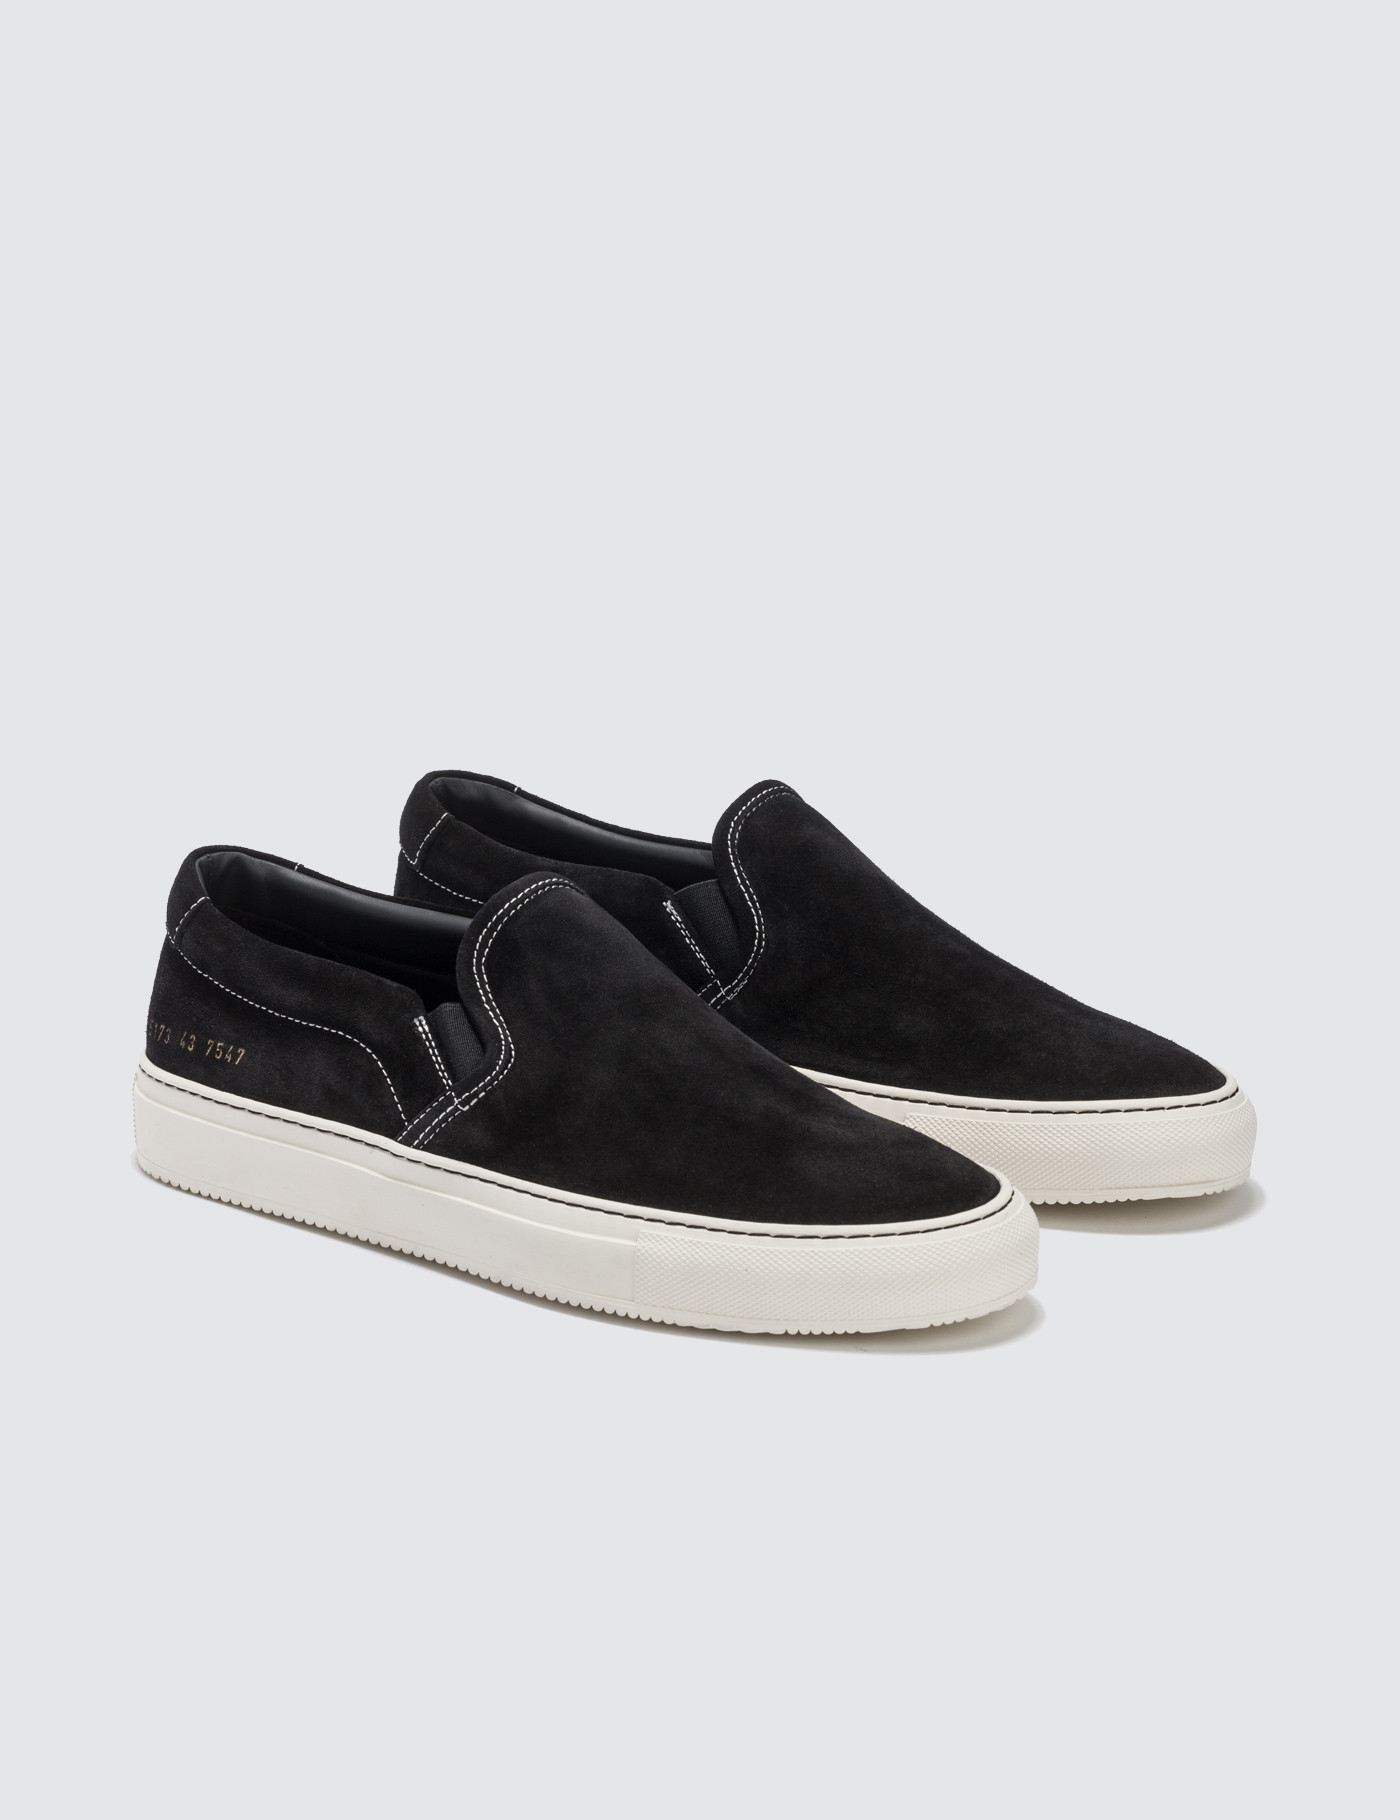 Buy Original Common Projects Slip On In